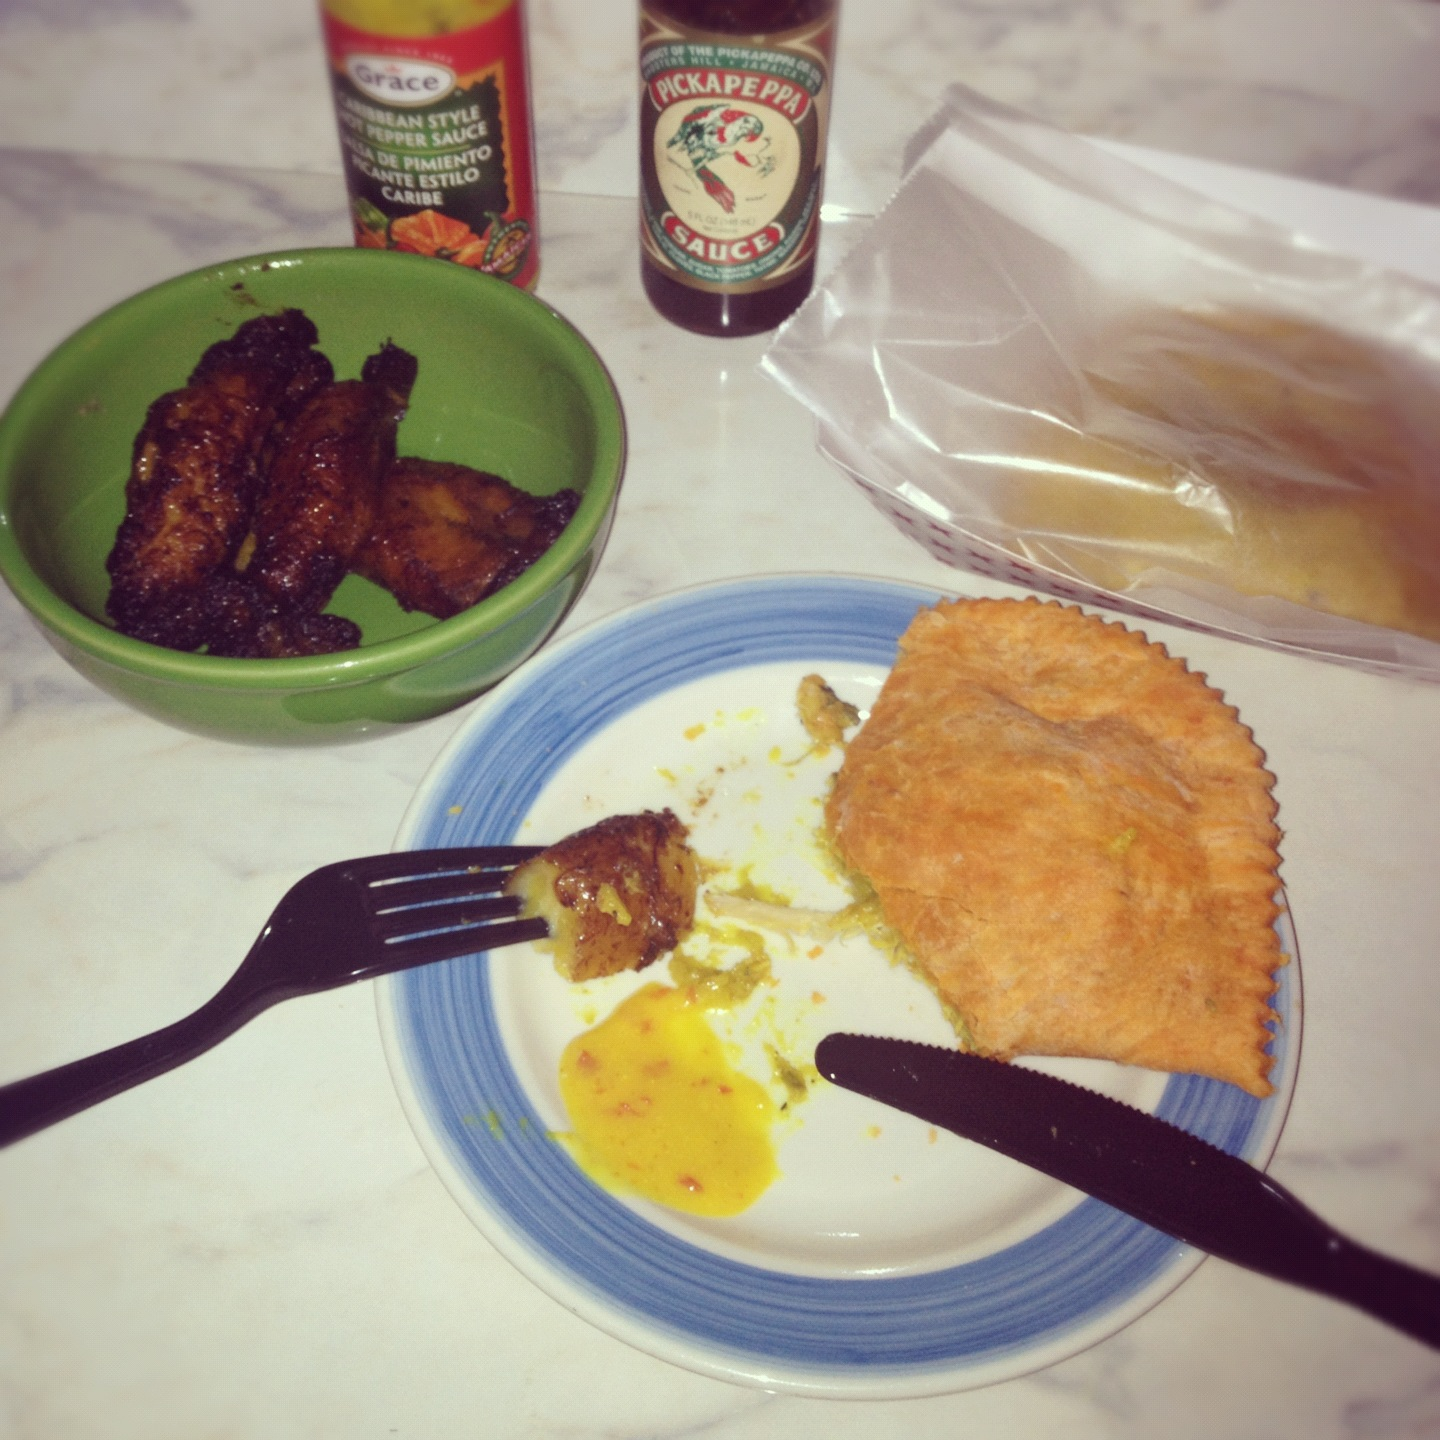 My humble Jamaican curry chicken patty and plantain dinner at Miss Lily's Bake Shop.